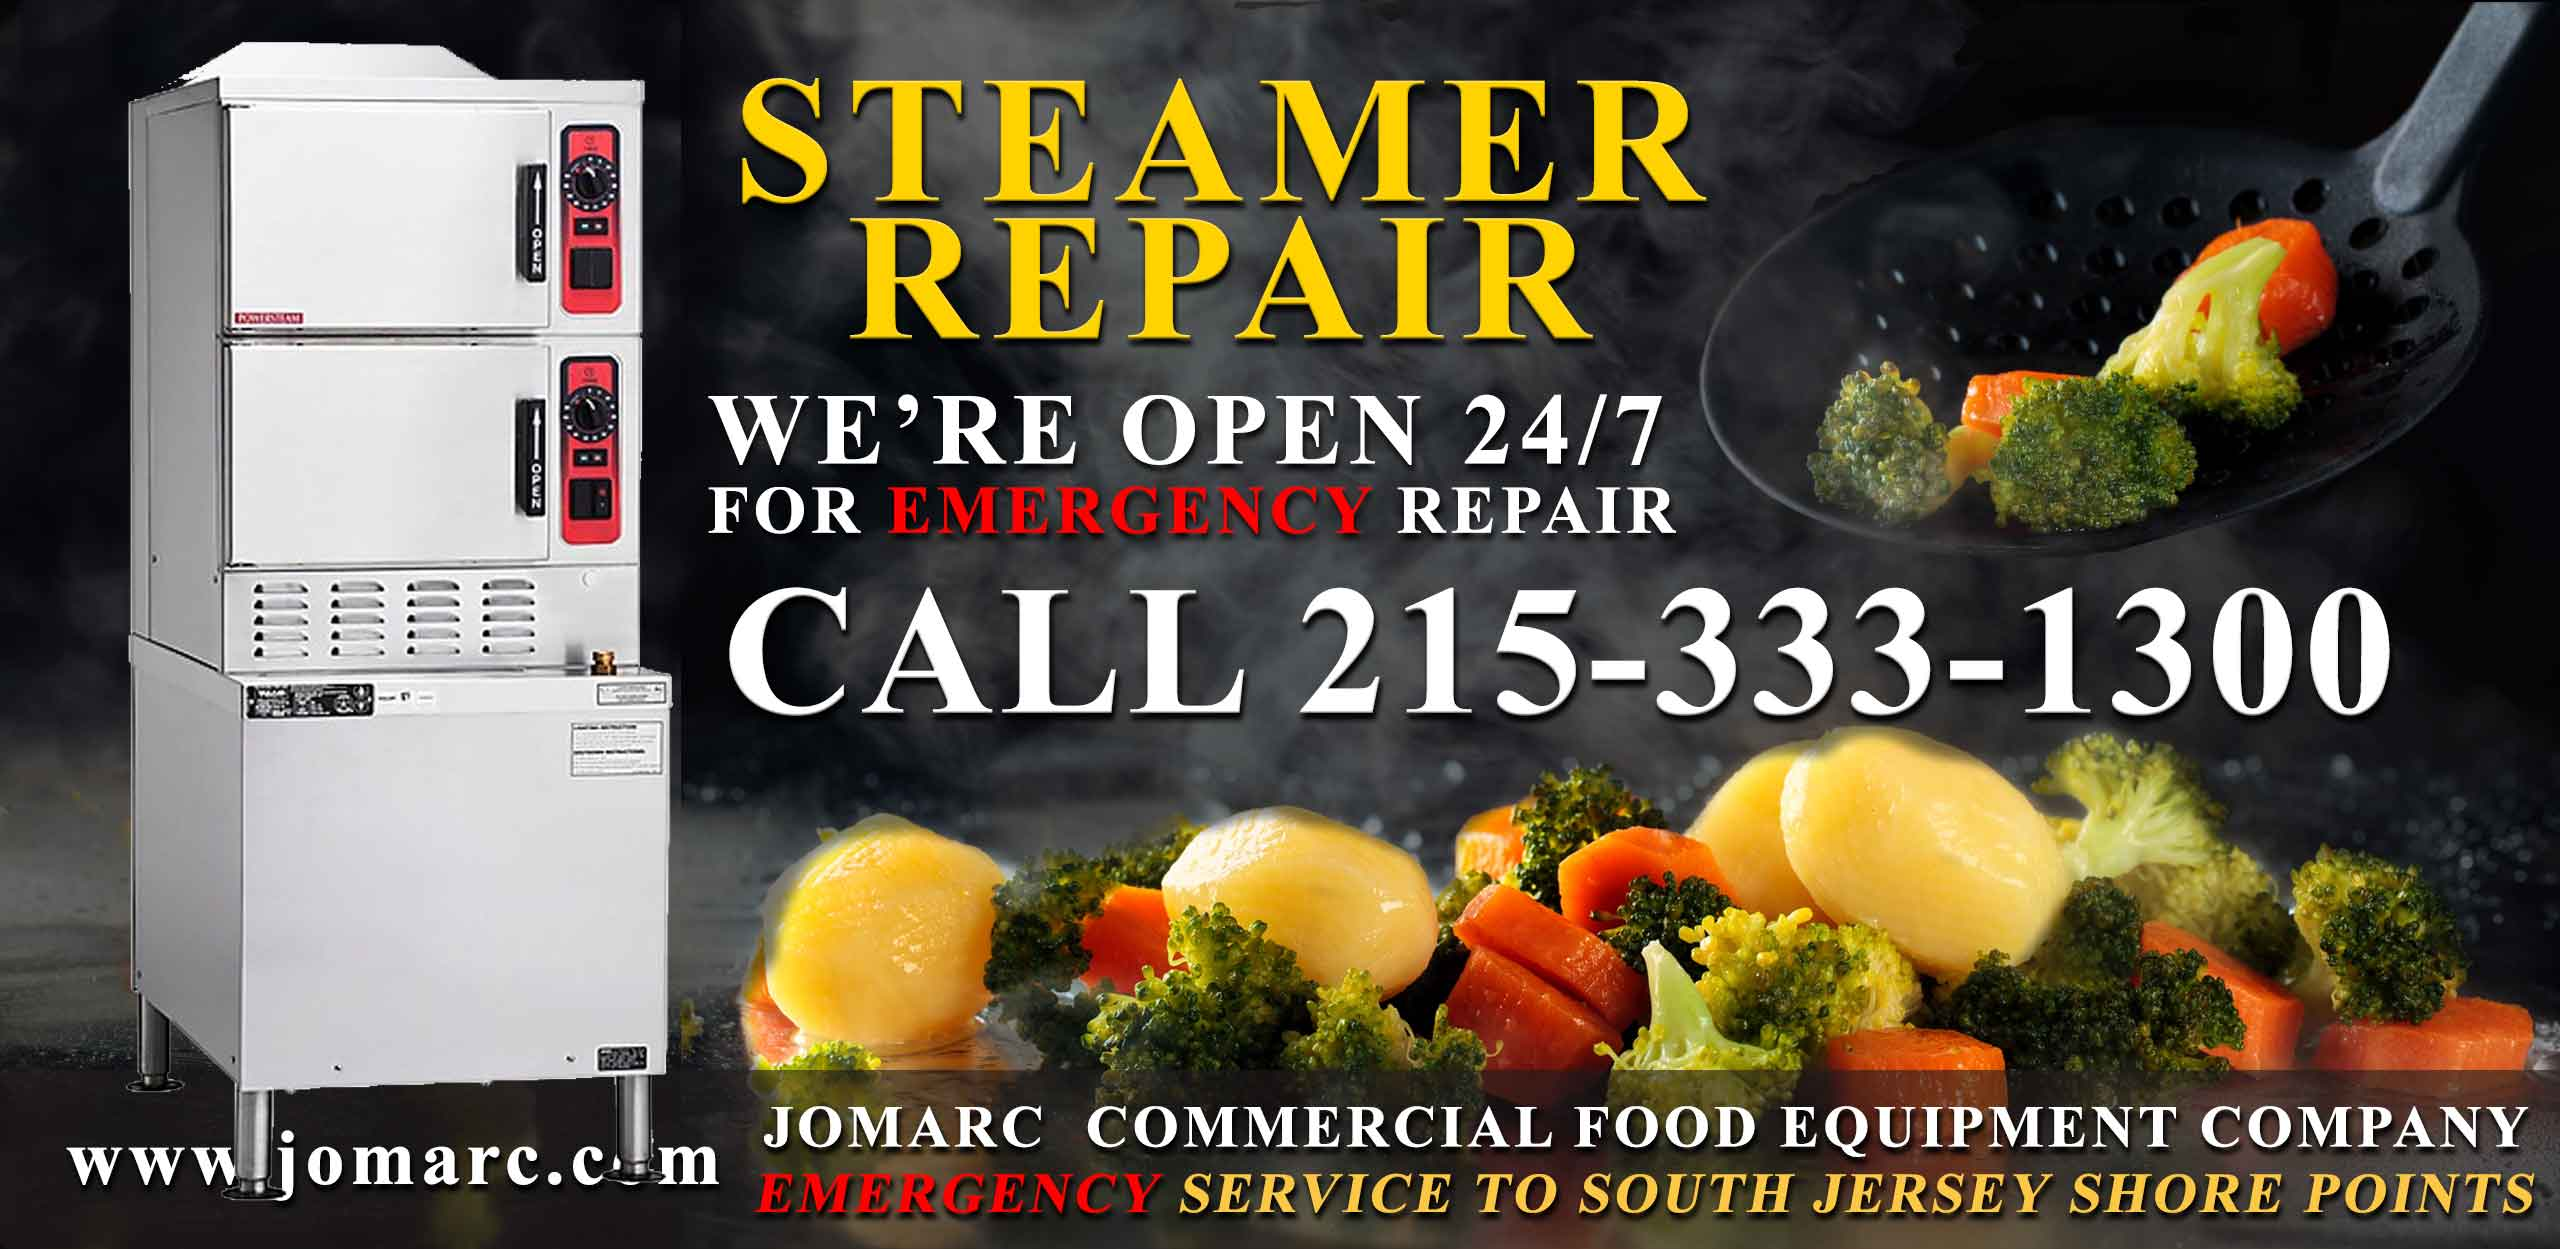 Commercial Steamer Repair New Jersey Cherry Hill Atlantic City Cape May Steam Kettles Portion Steamers Fast Steamers Microwave Steamers Steam Generators